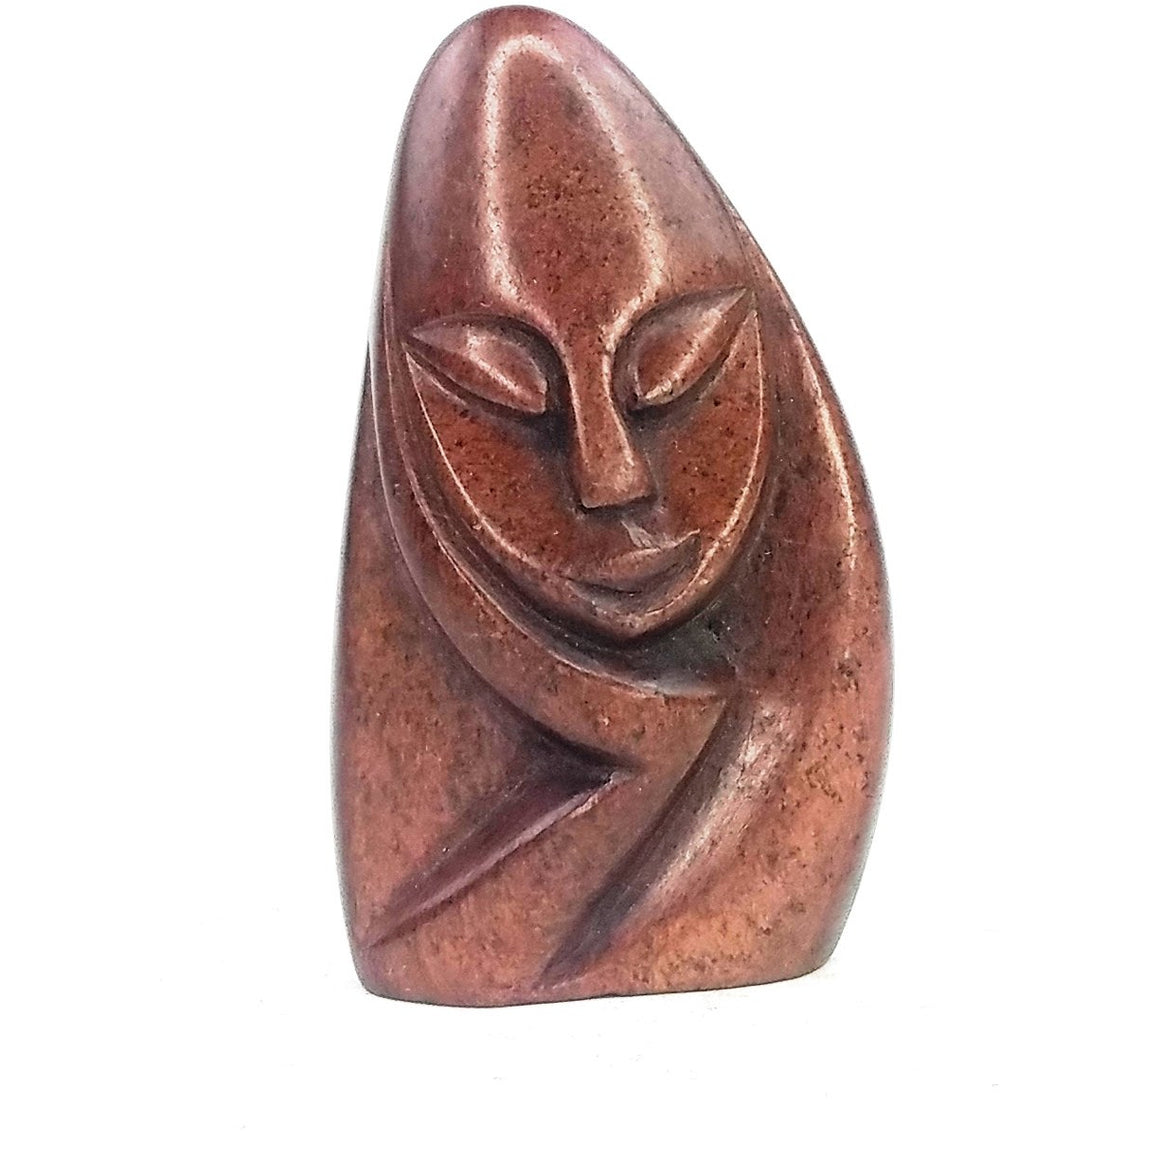 Red Stone Shona Thinker Statue Hand Carved In Zimbabwe